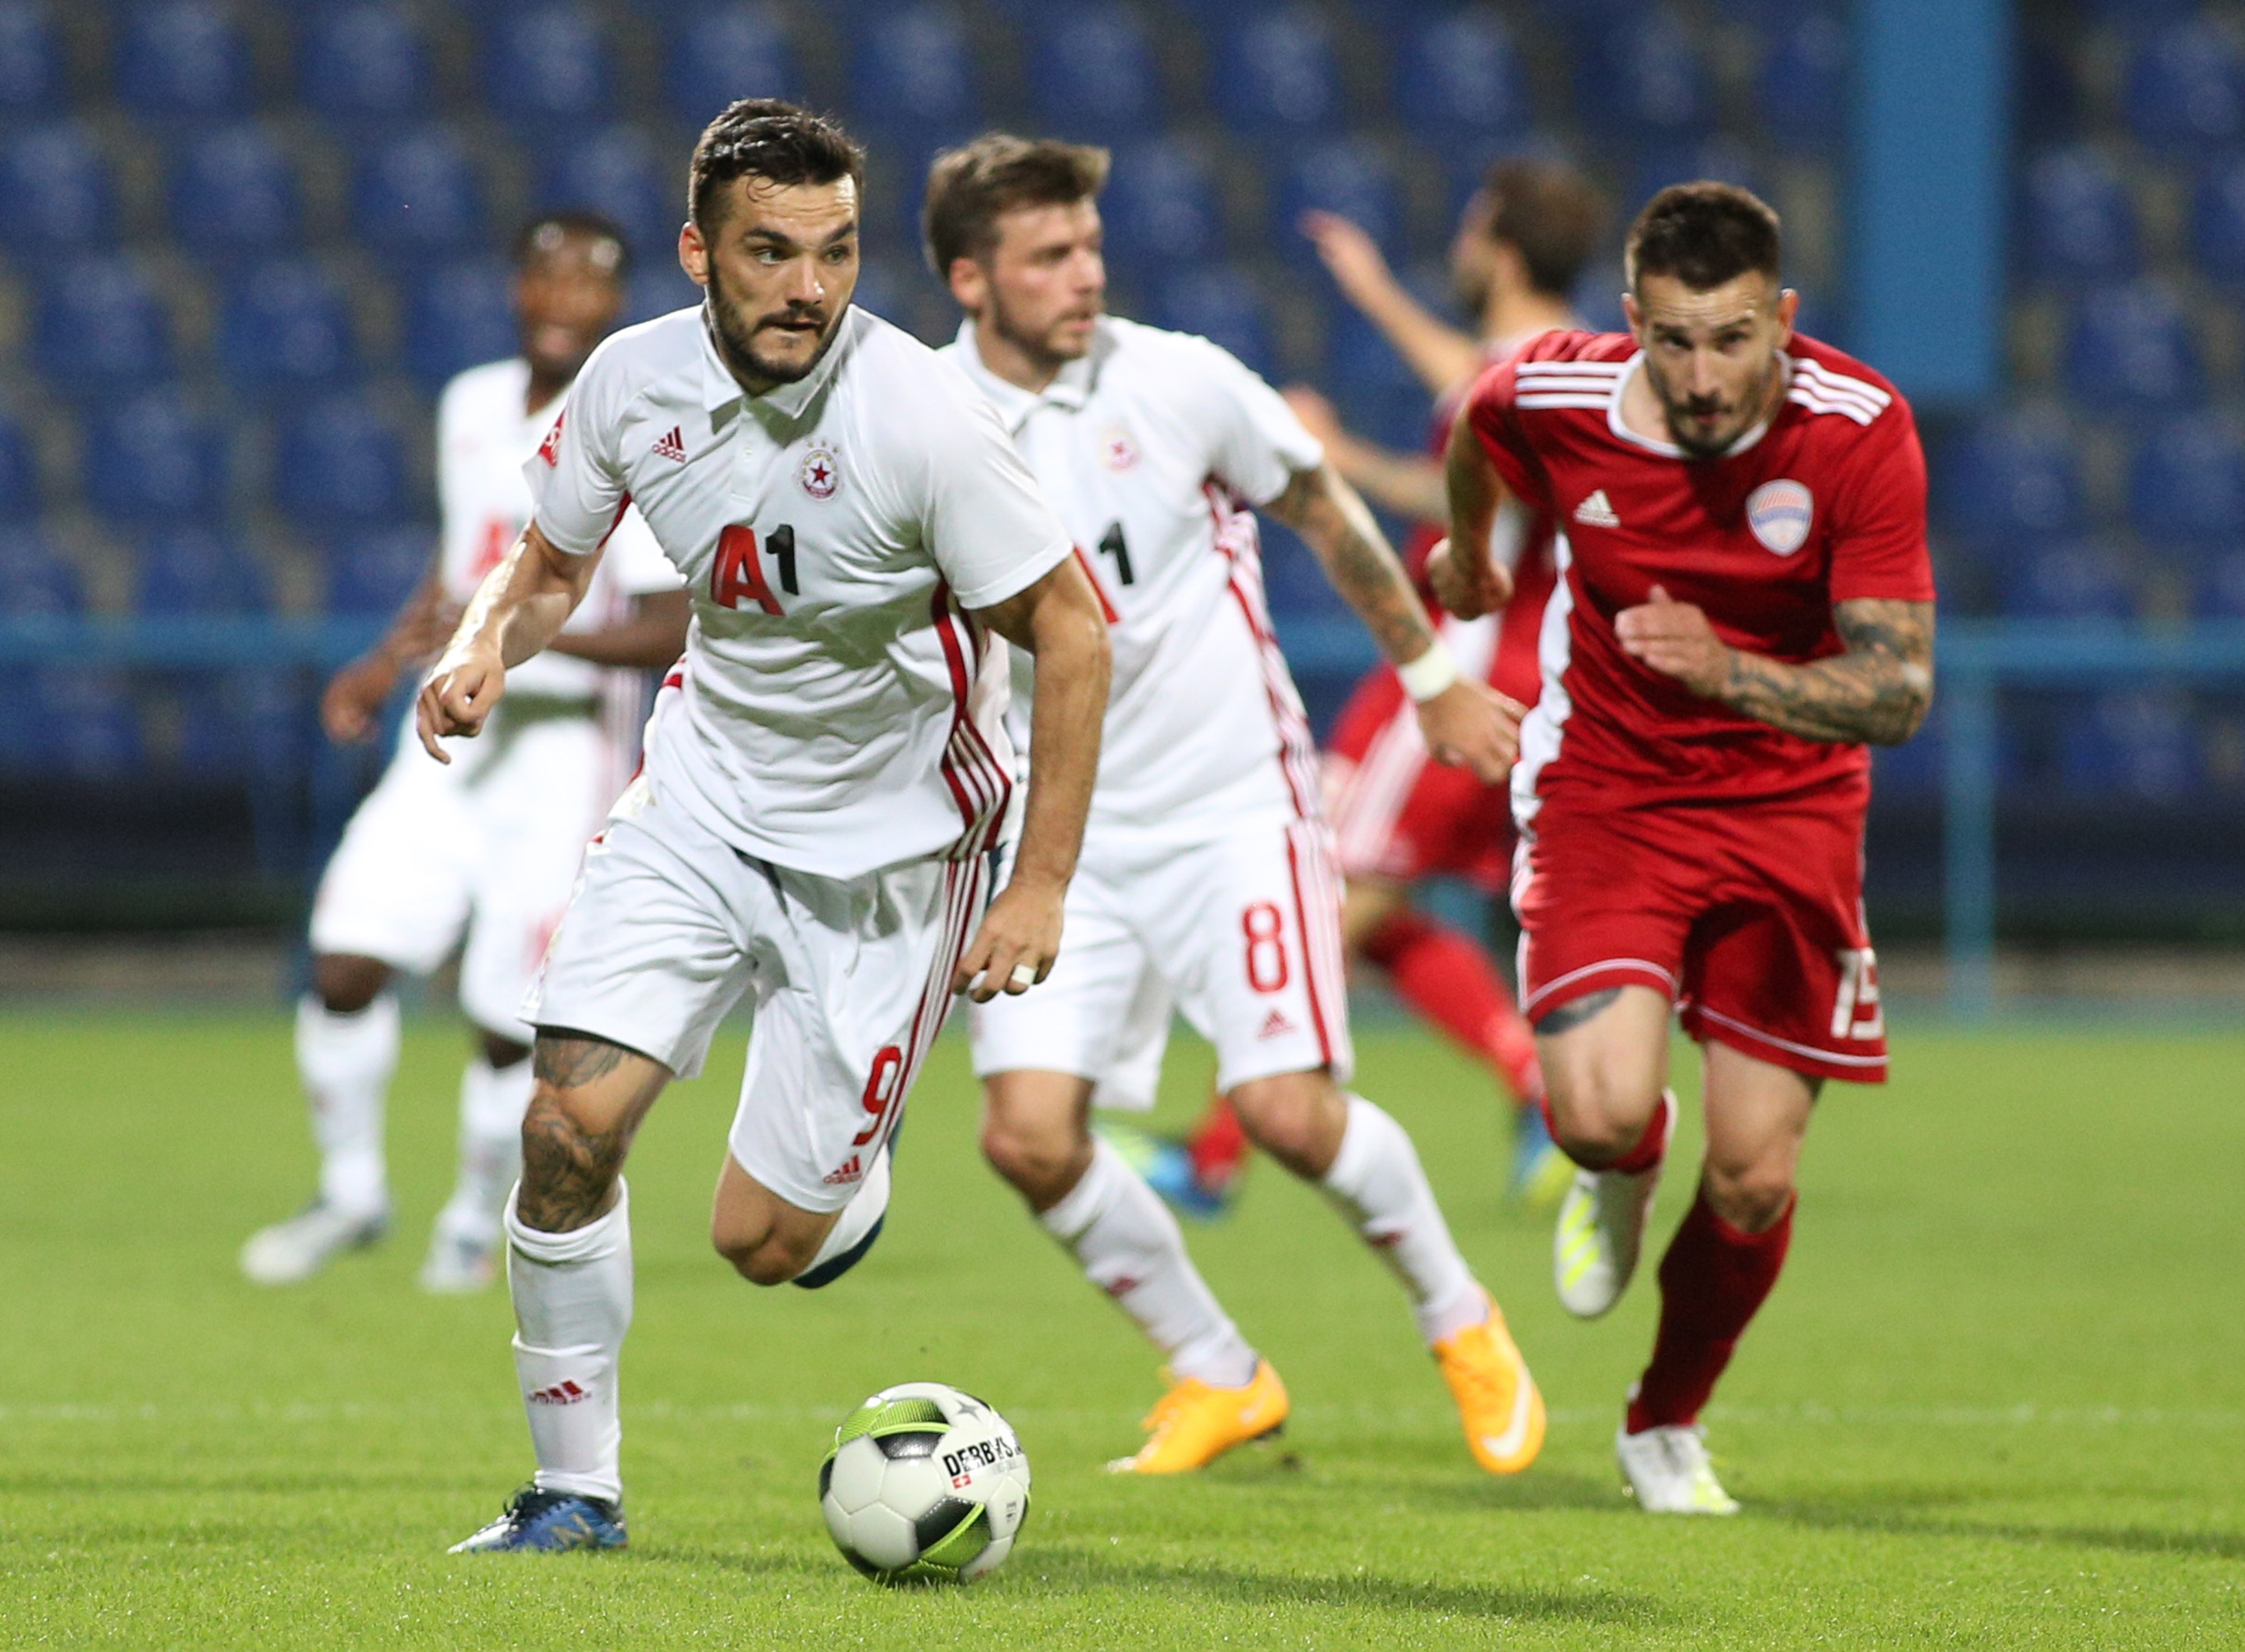 Tony Watt in action for CSKA Sofia during the Europa League first round qualifier match with OFK Titograd